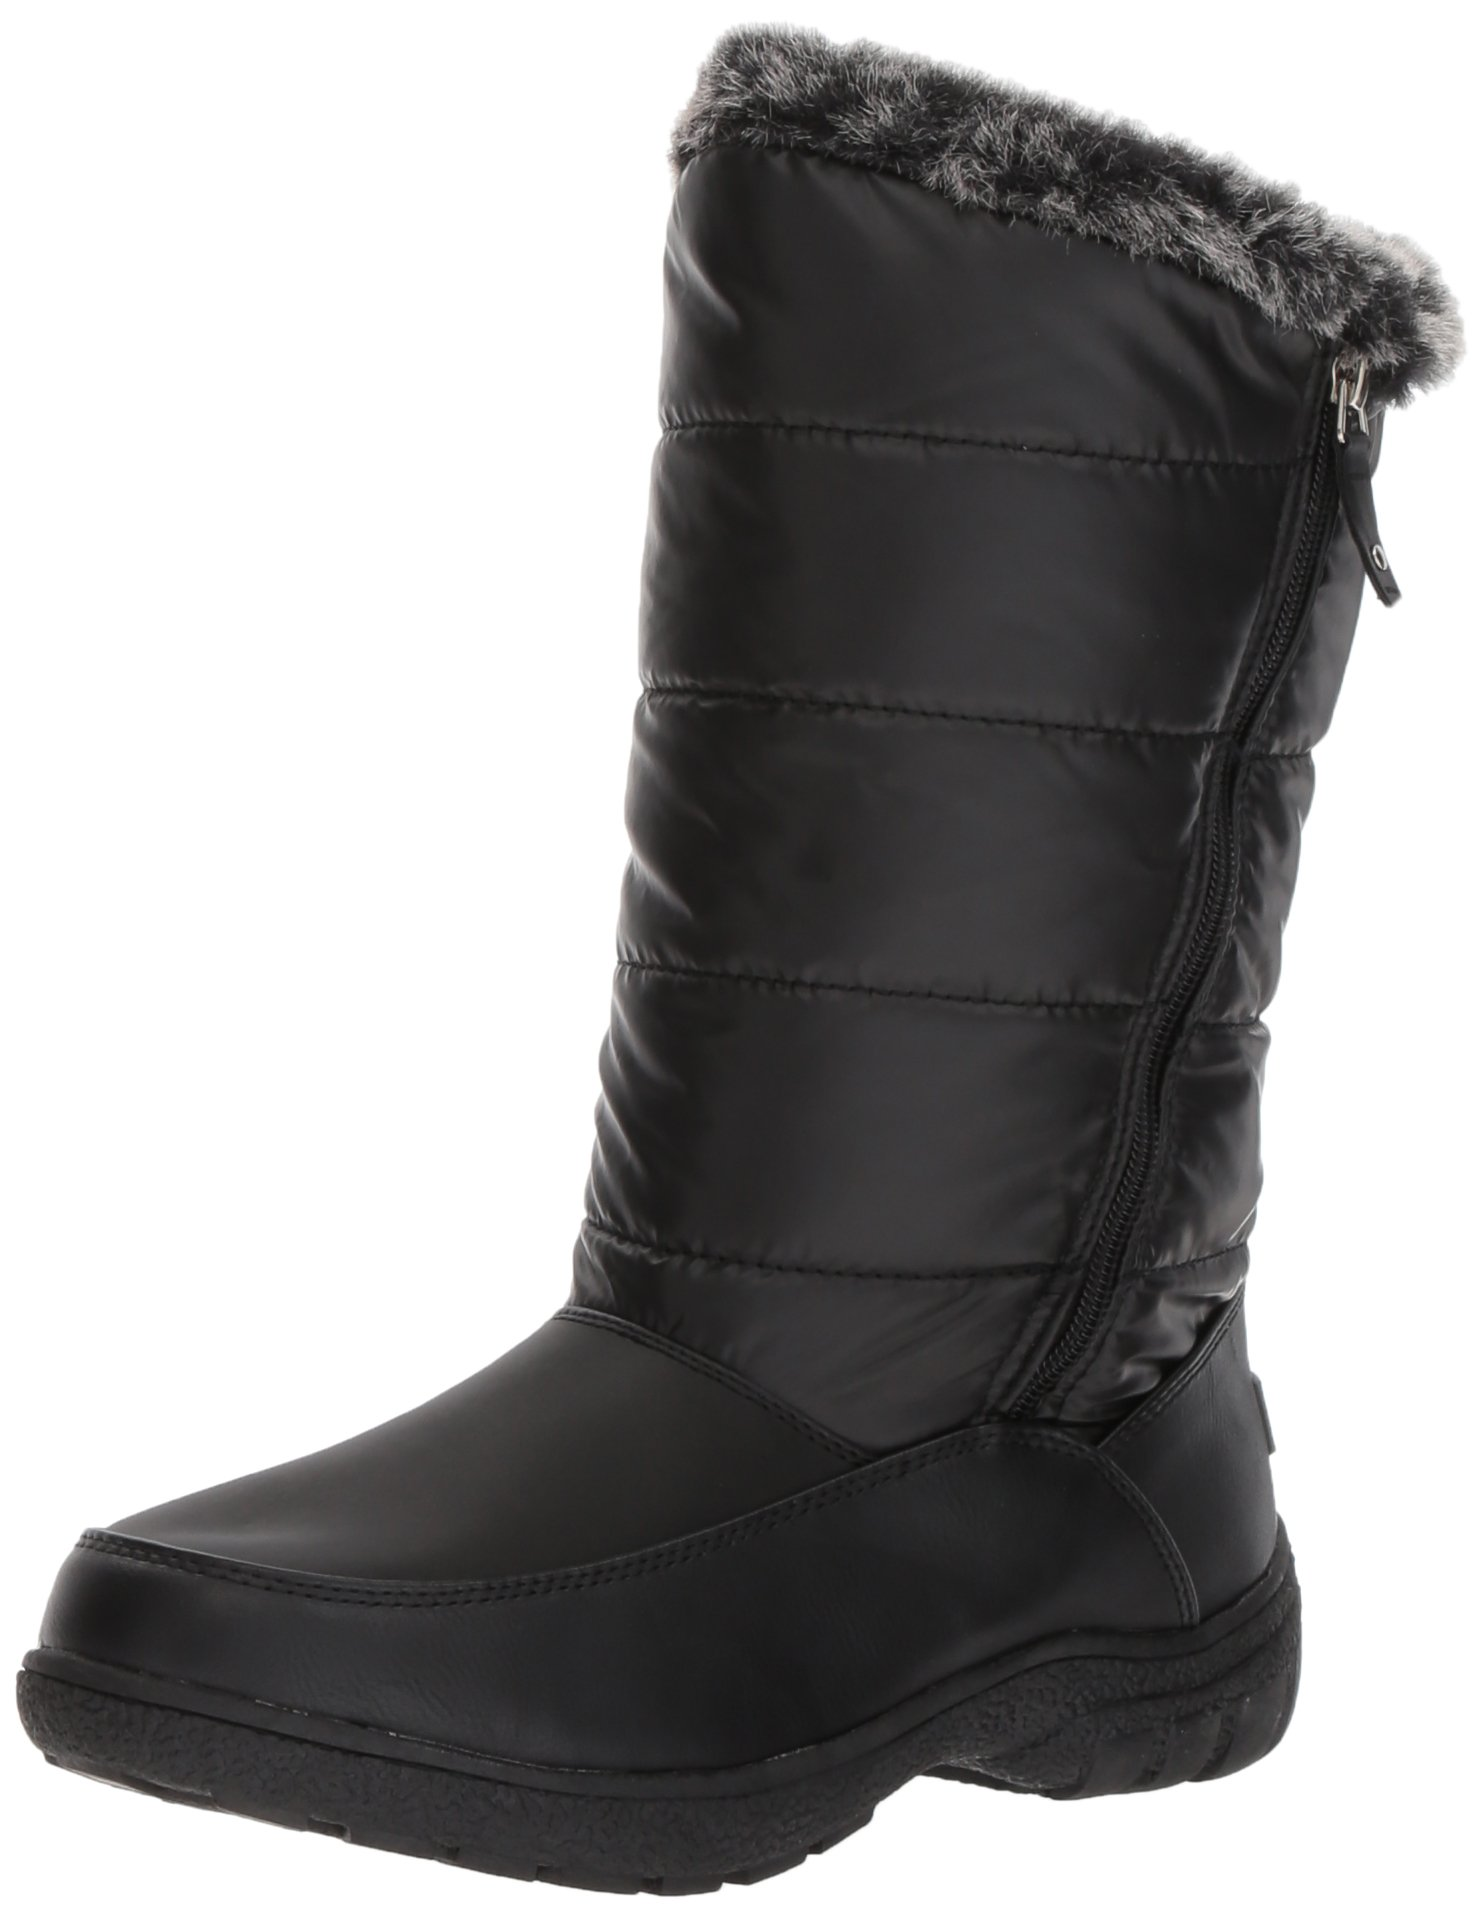 Sugar Women's Lucille Tall Shaft Faux Fur Waterproof Winter Weather Snow Boot, Black, 7 Medium US